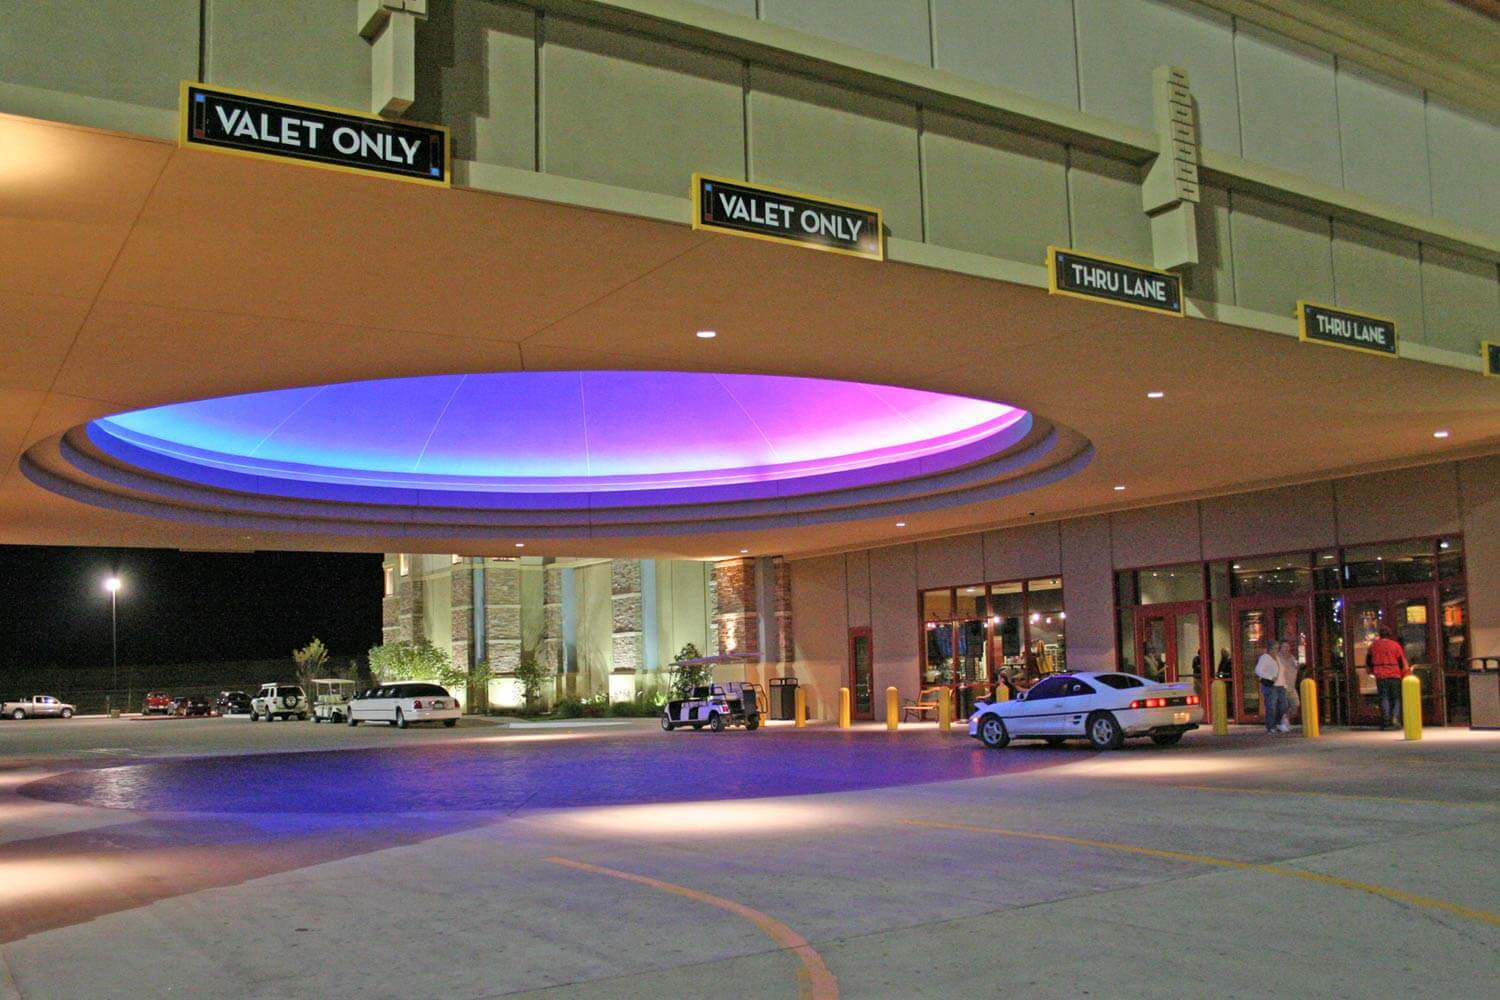 Valet Entry at the Grand Casino Image